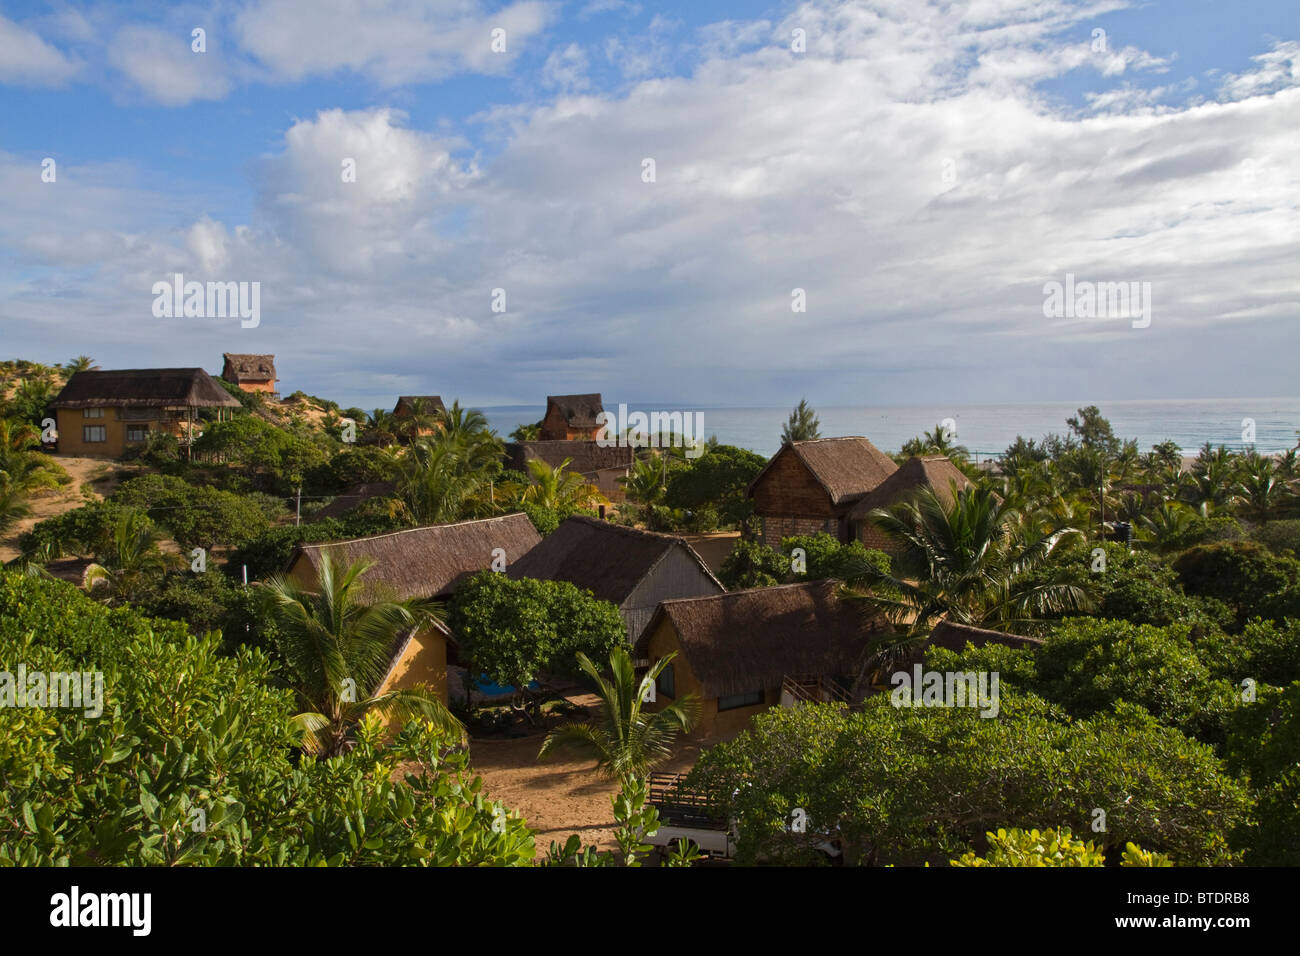 Scenic view of houses and holiday cottages on the Mozambique coast - Stock Image